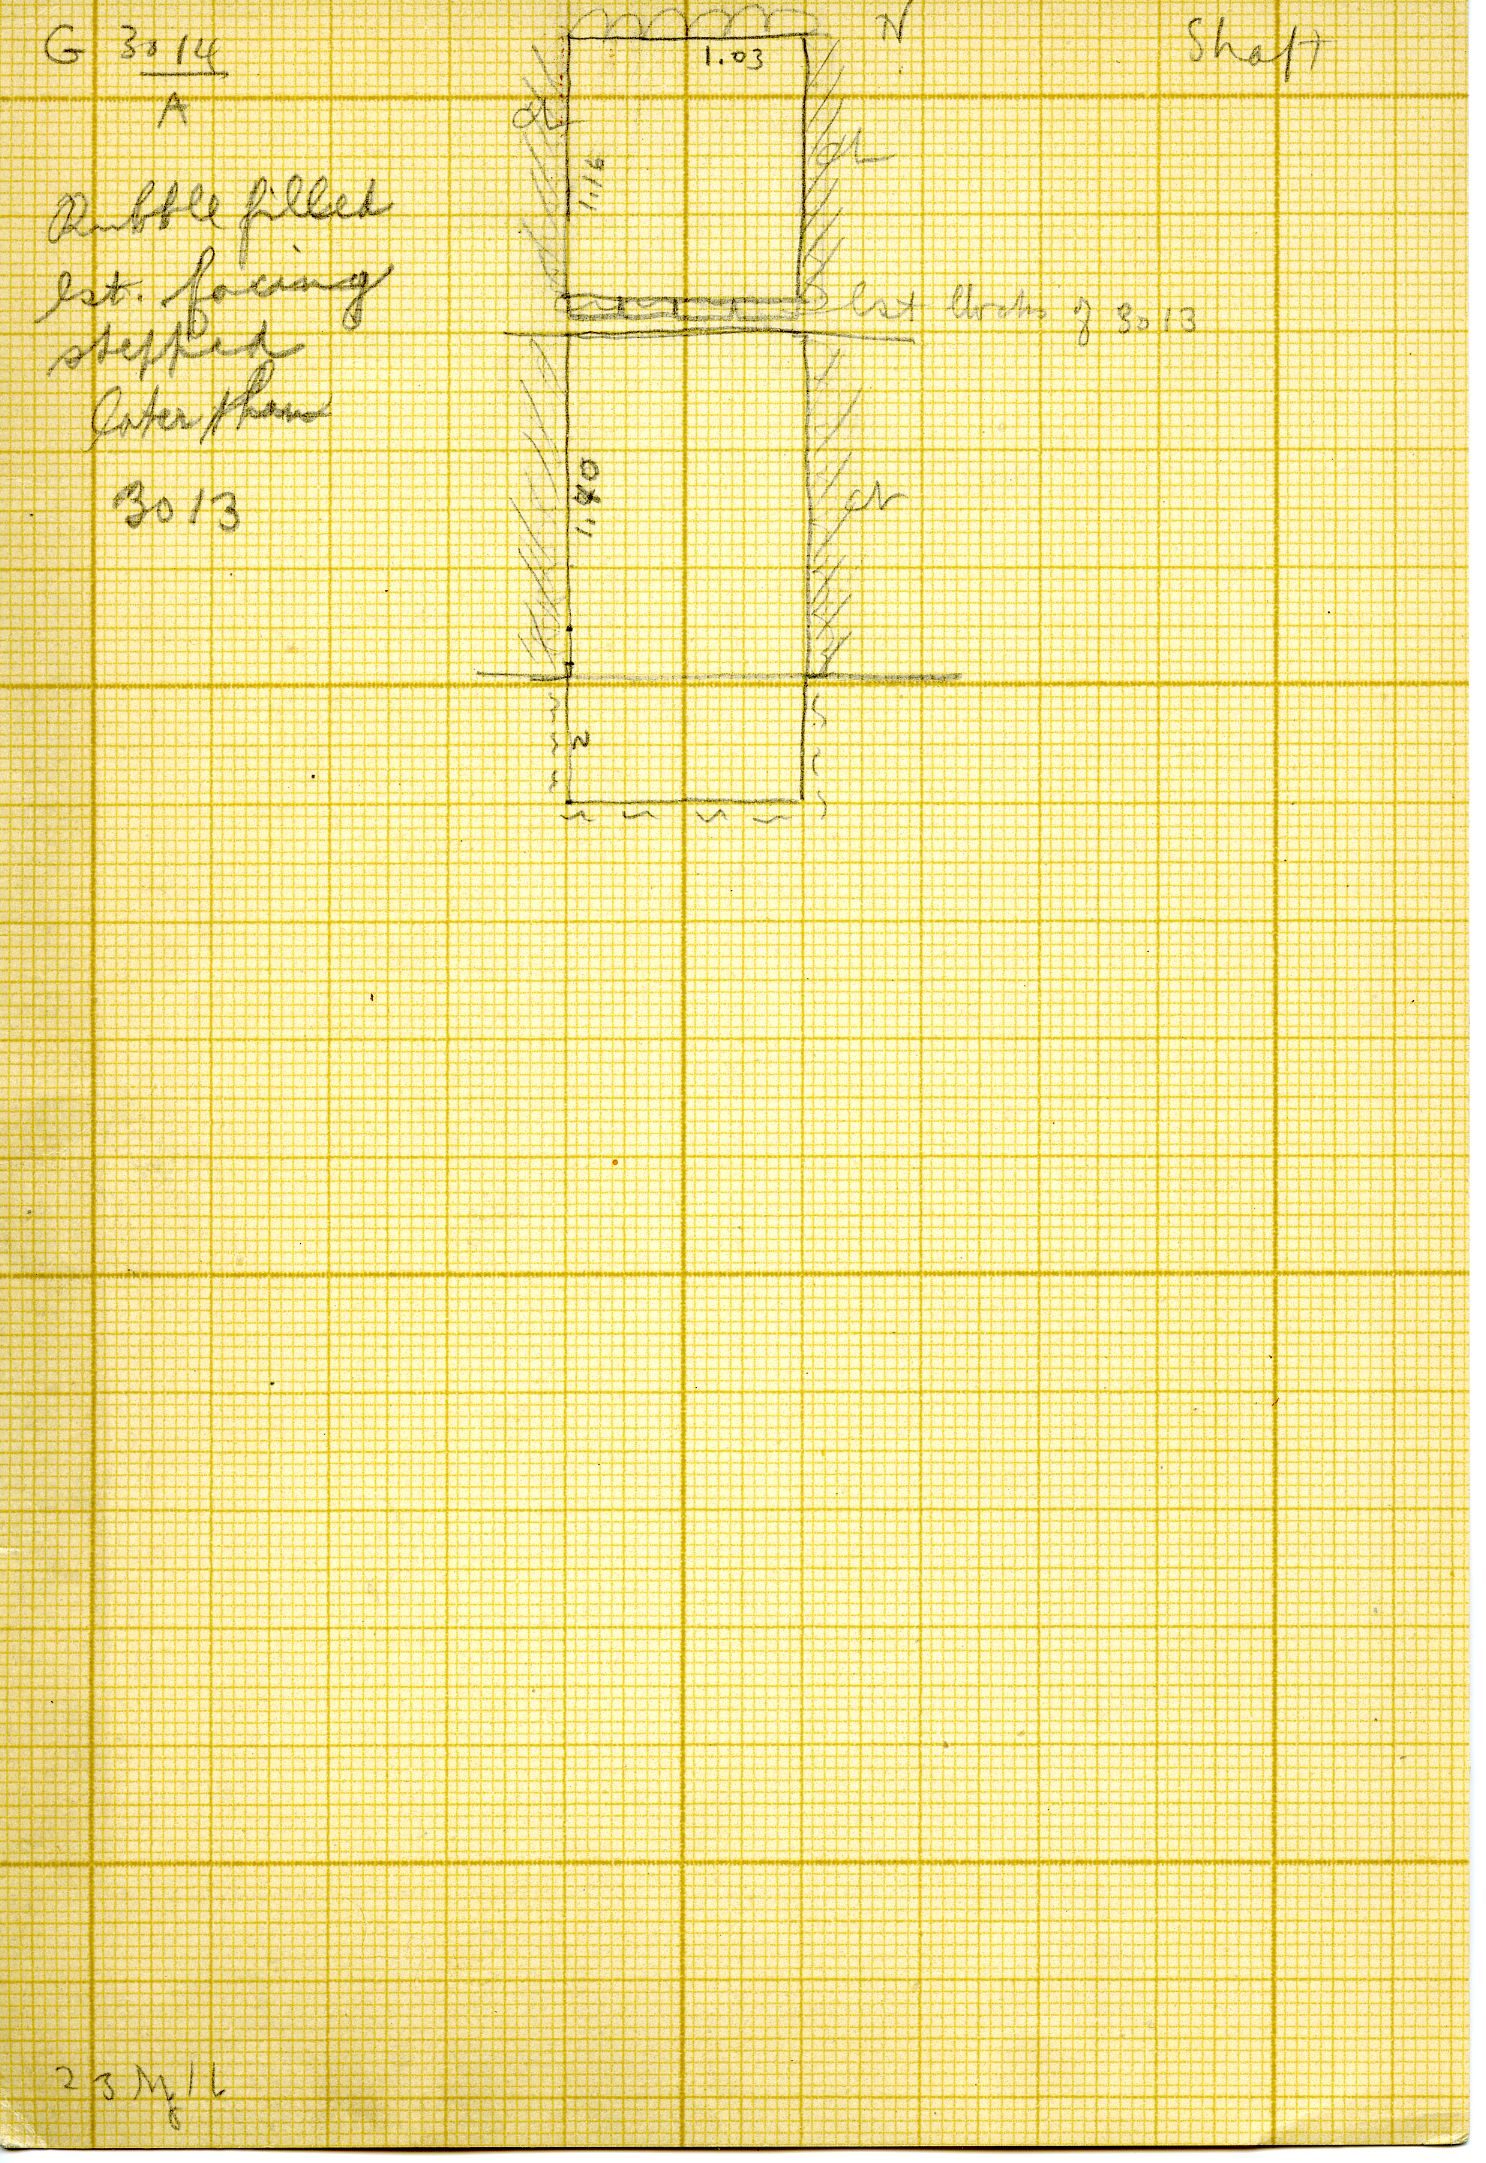 Maps and plans: G 3014, Shaft A